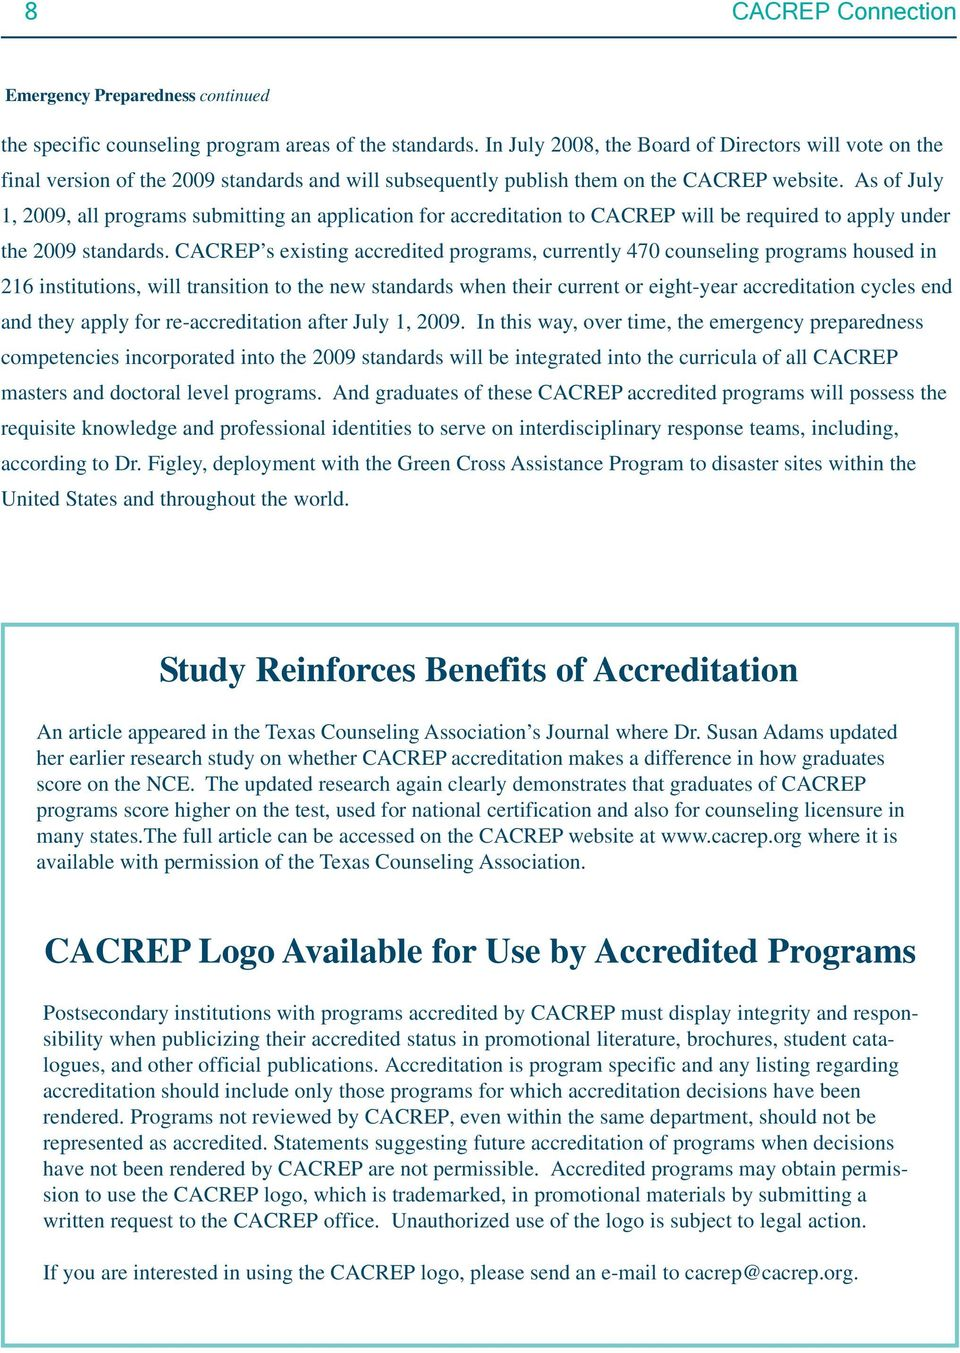 As of July 1, 2009, all programs submitting an application for accreditation to CACREP will be required to apply under the 2009 standards.